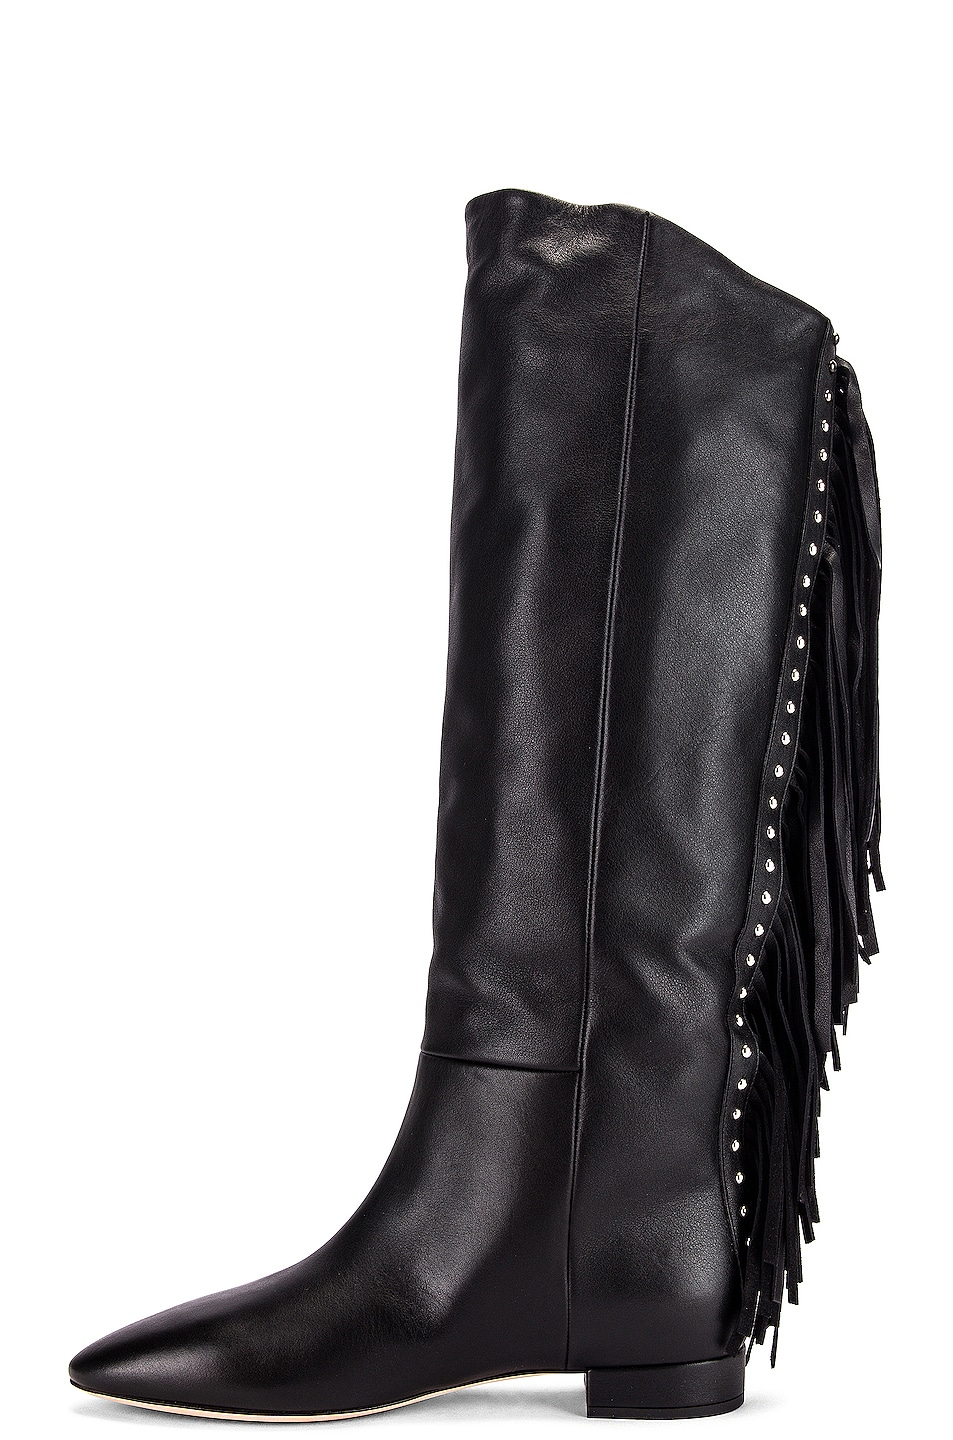 Image 5 of Saint Laurent Nina Tassel Boots in Black